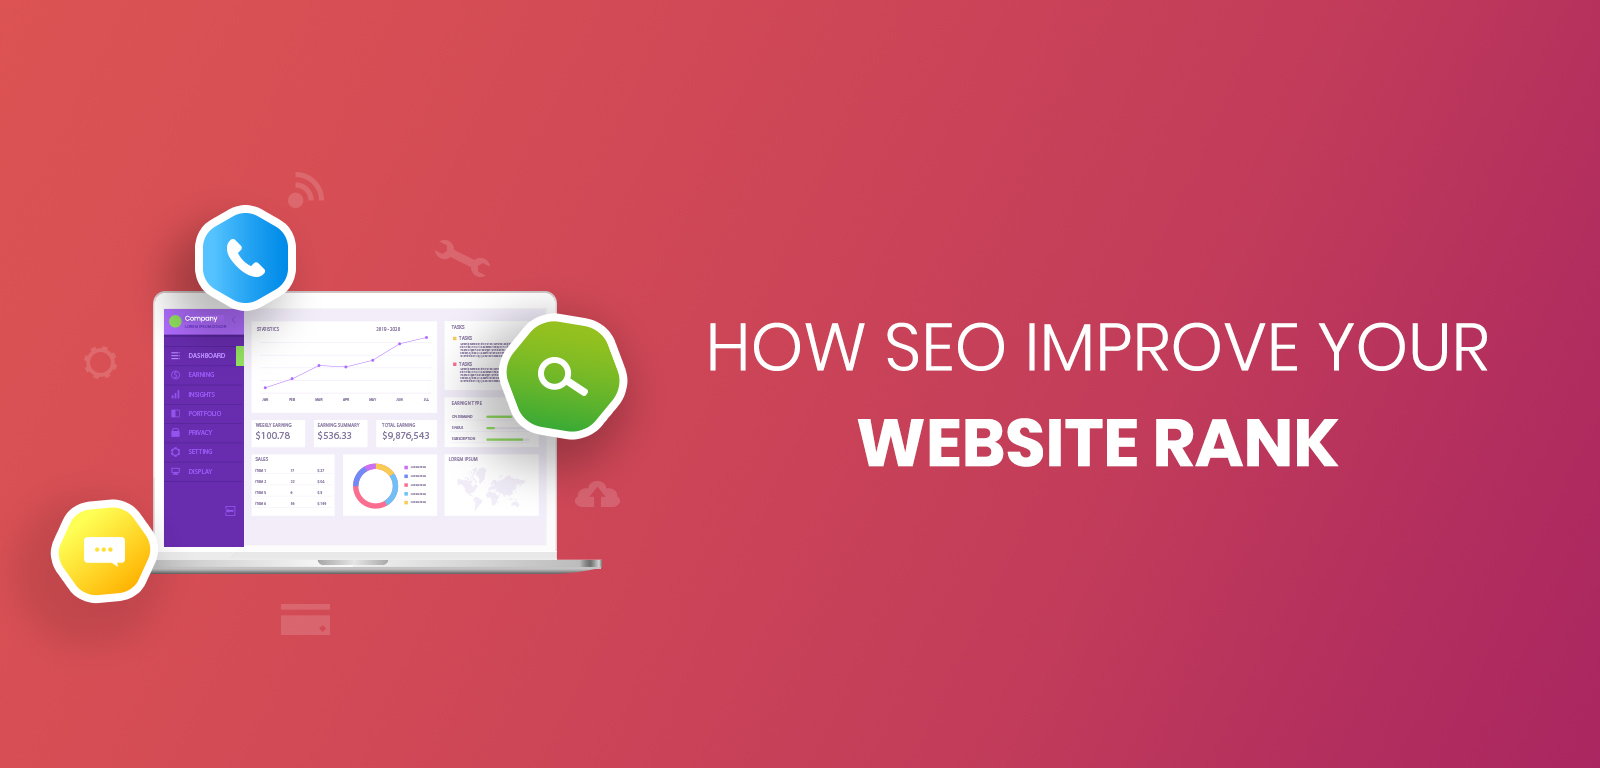 How SEO improve your website rank